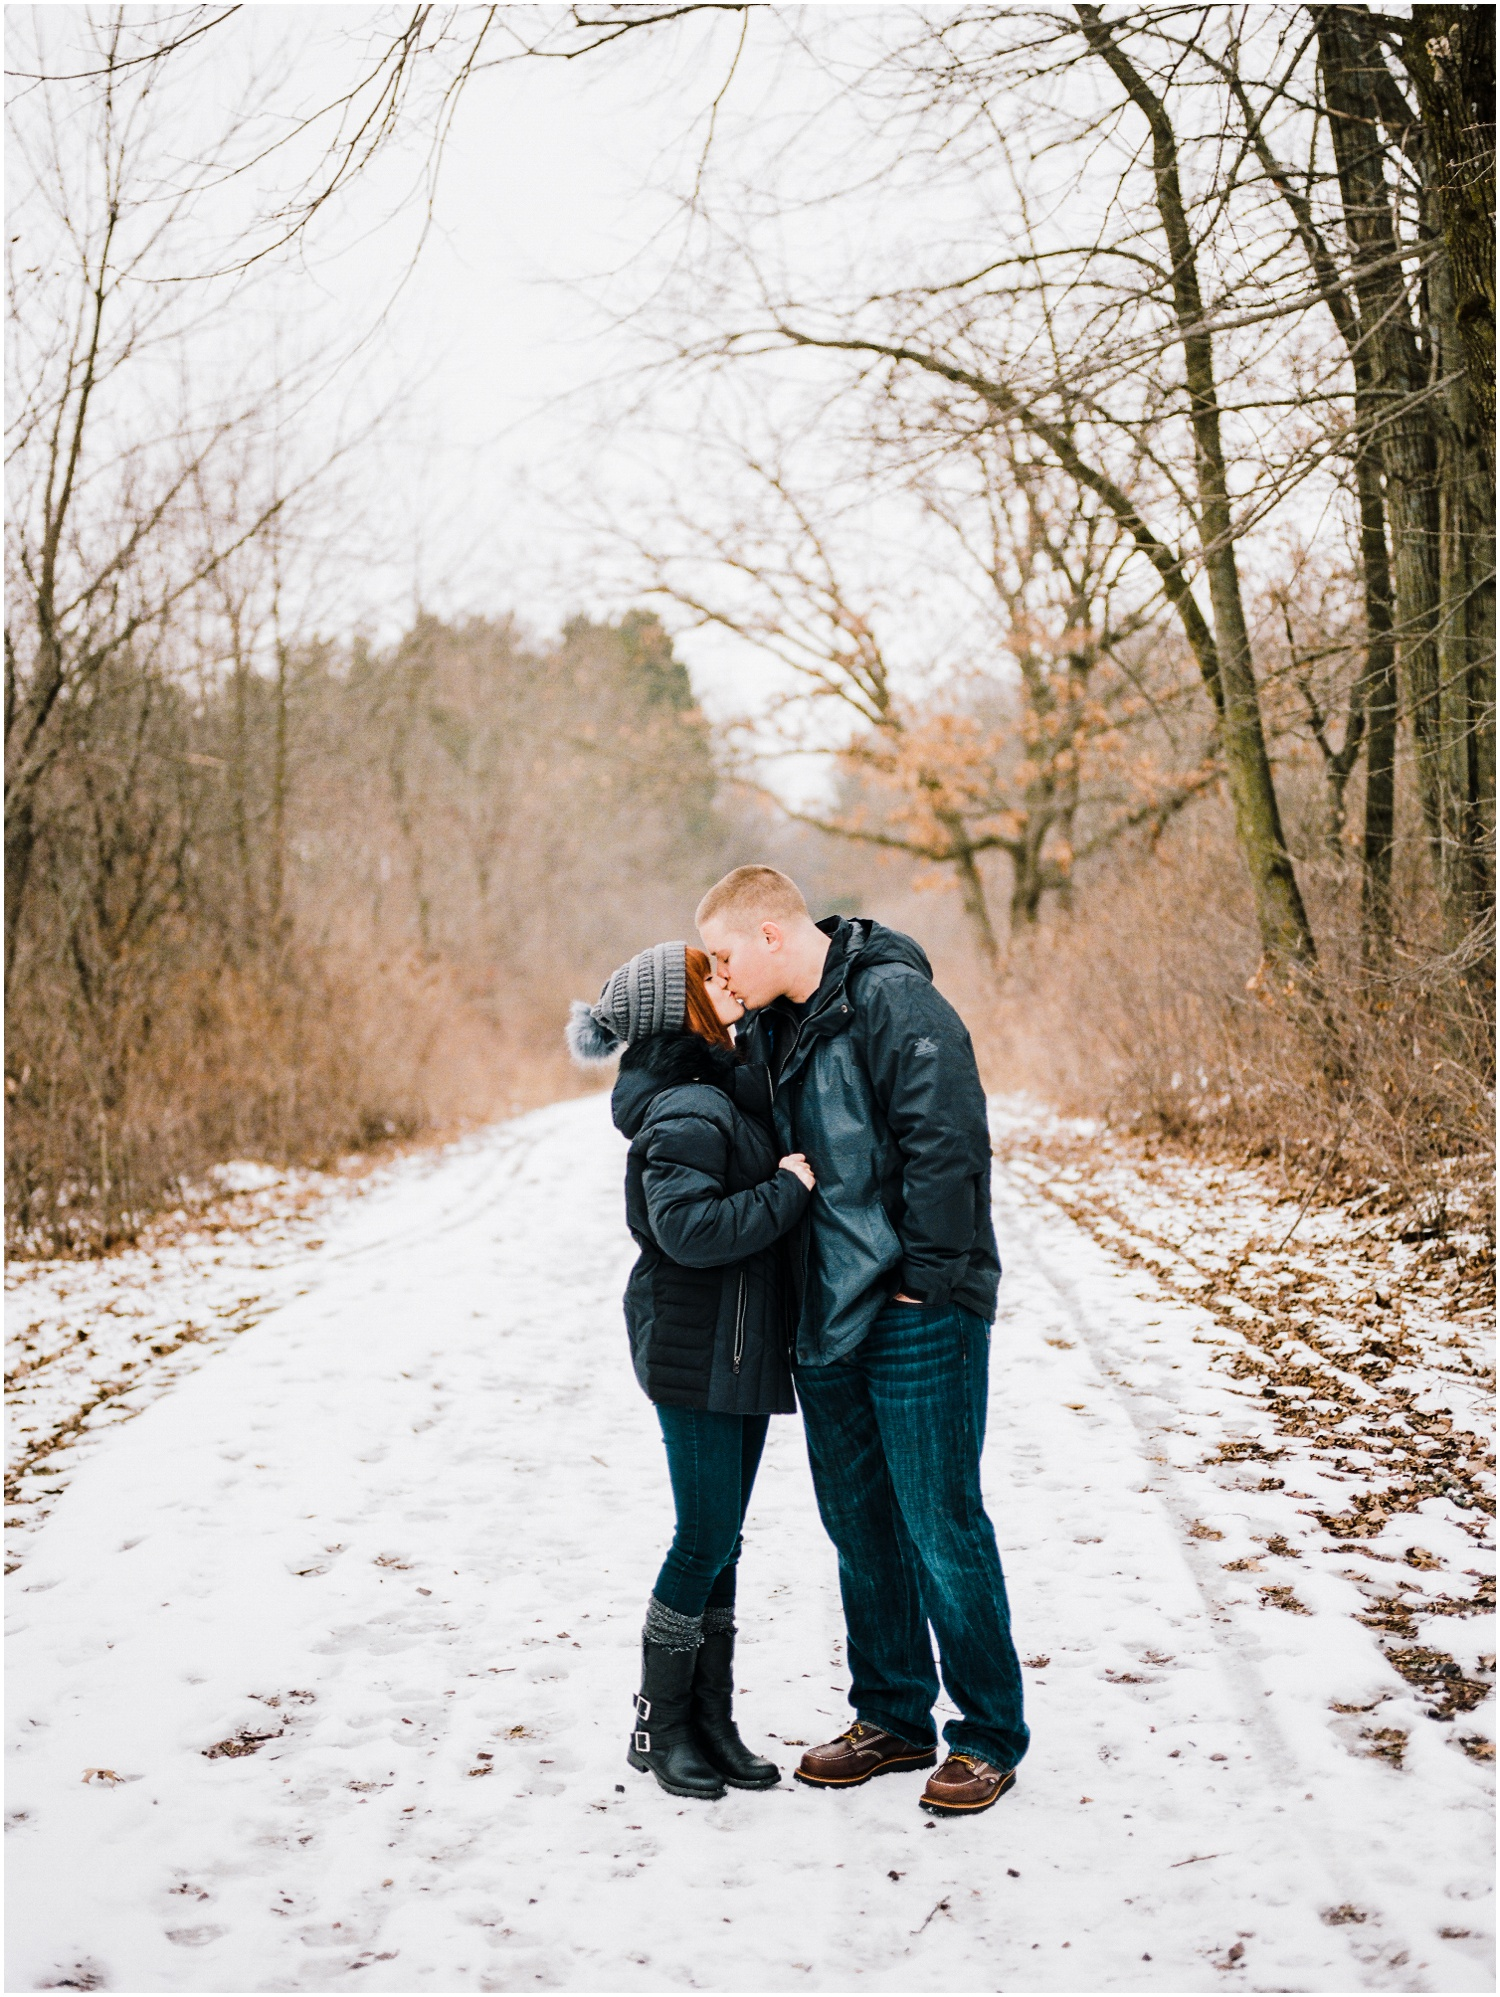 Devils-Lake-Baraboo-Wisconsin-Engagement-Photographer-Lindsey-And-Cody-Engaged-186.jpg